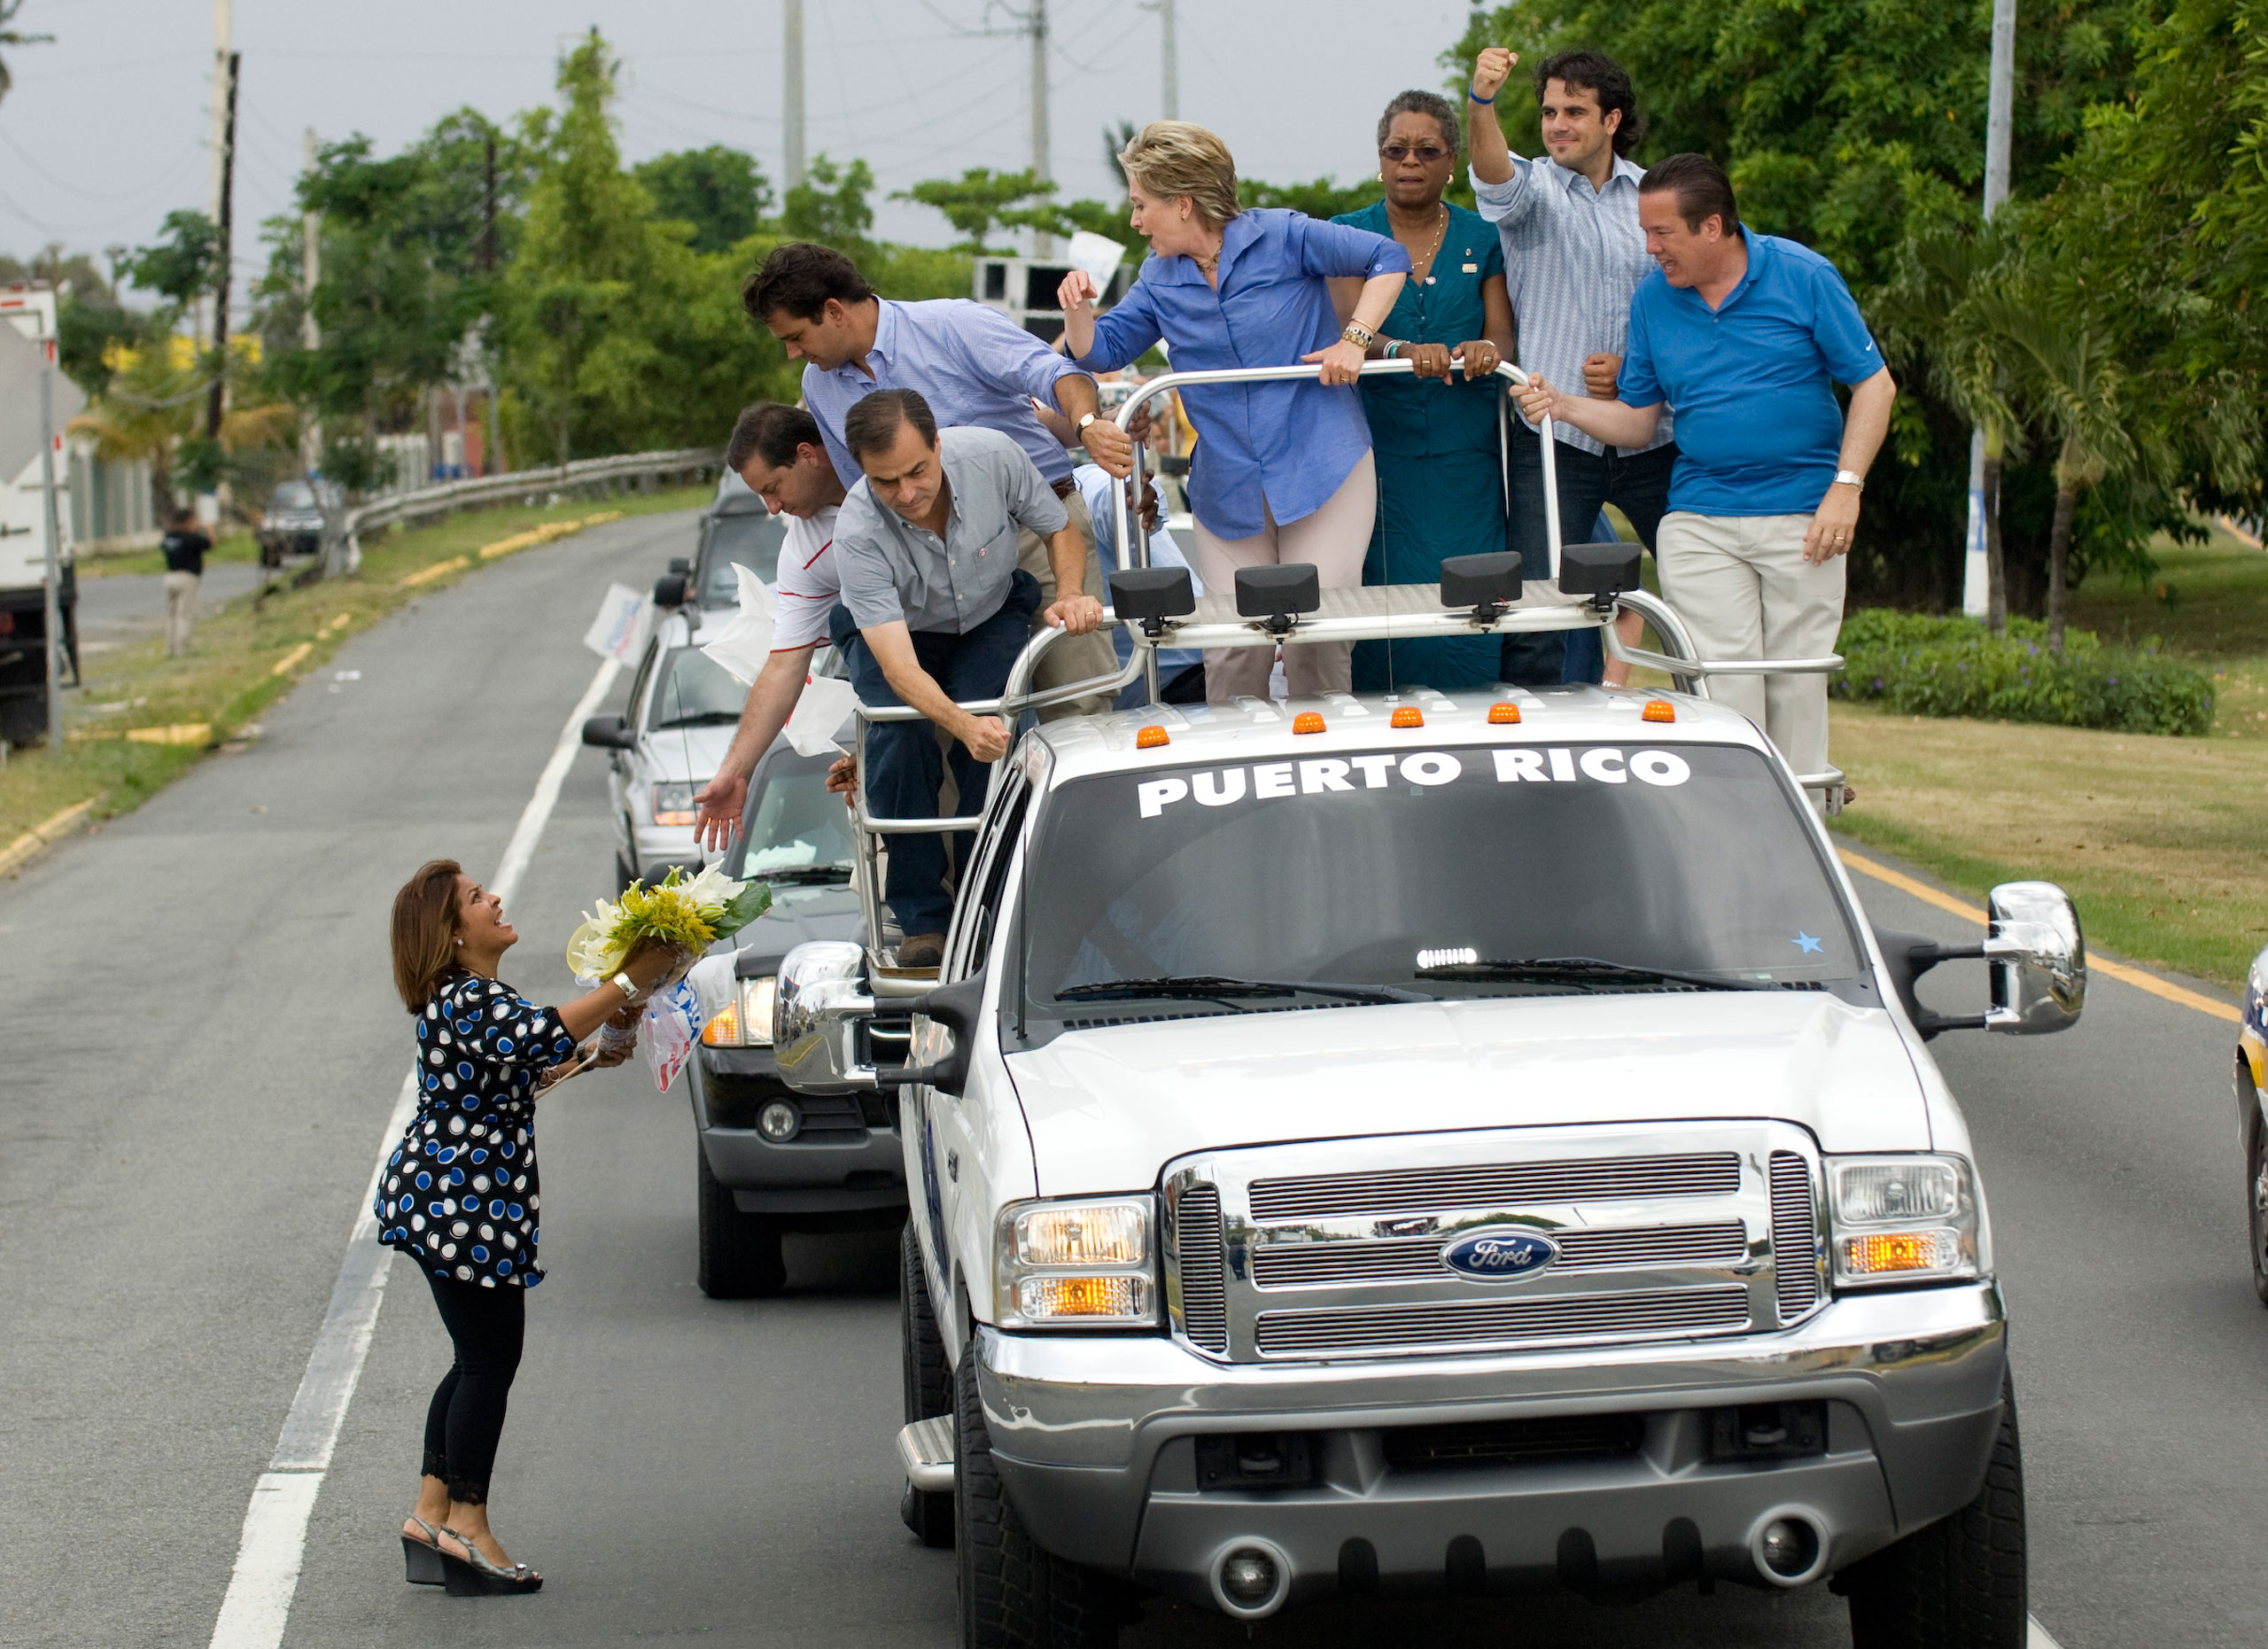 A campaign stop in Puerto Rico during the 2008 presidential elections. It's tradition that candidates ride through town on a truck with music blaring.